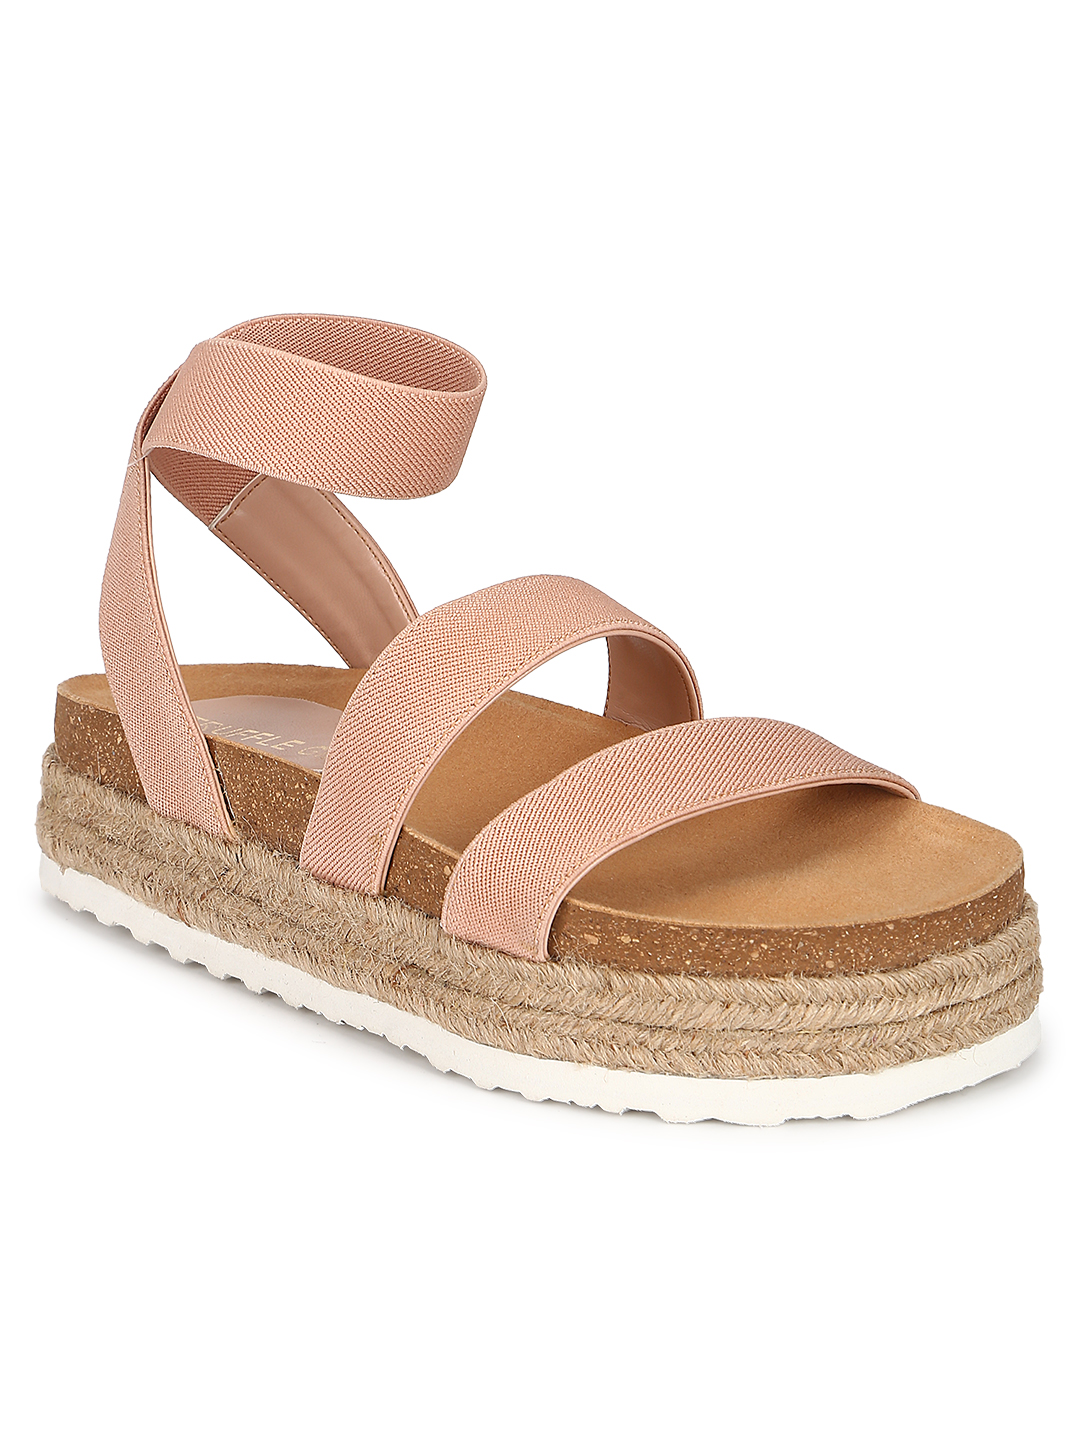 Truffle Collection | Truffle Collection Nude PU Platform Wedges With Back Strap Espadrilles Sandals